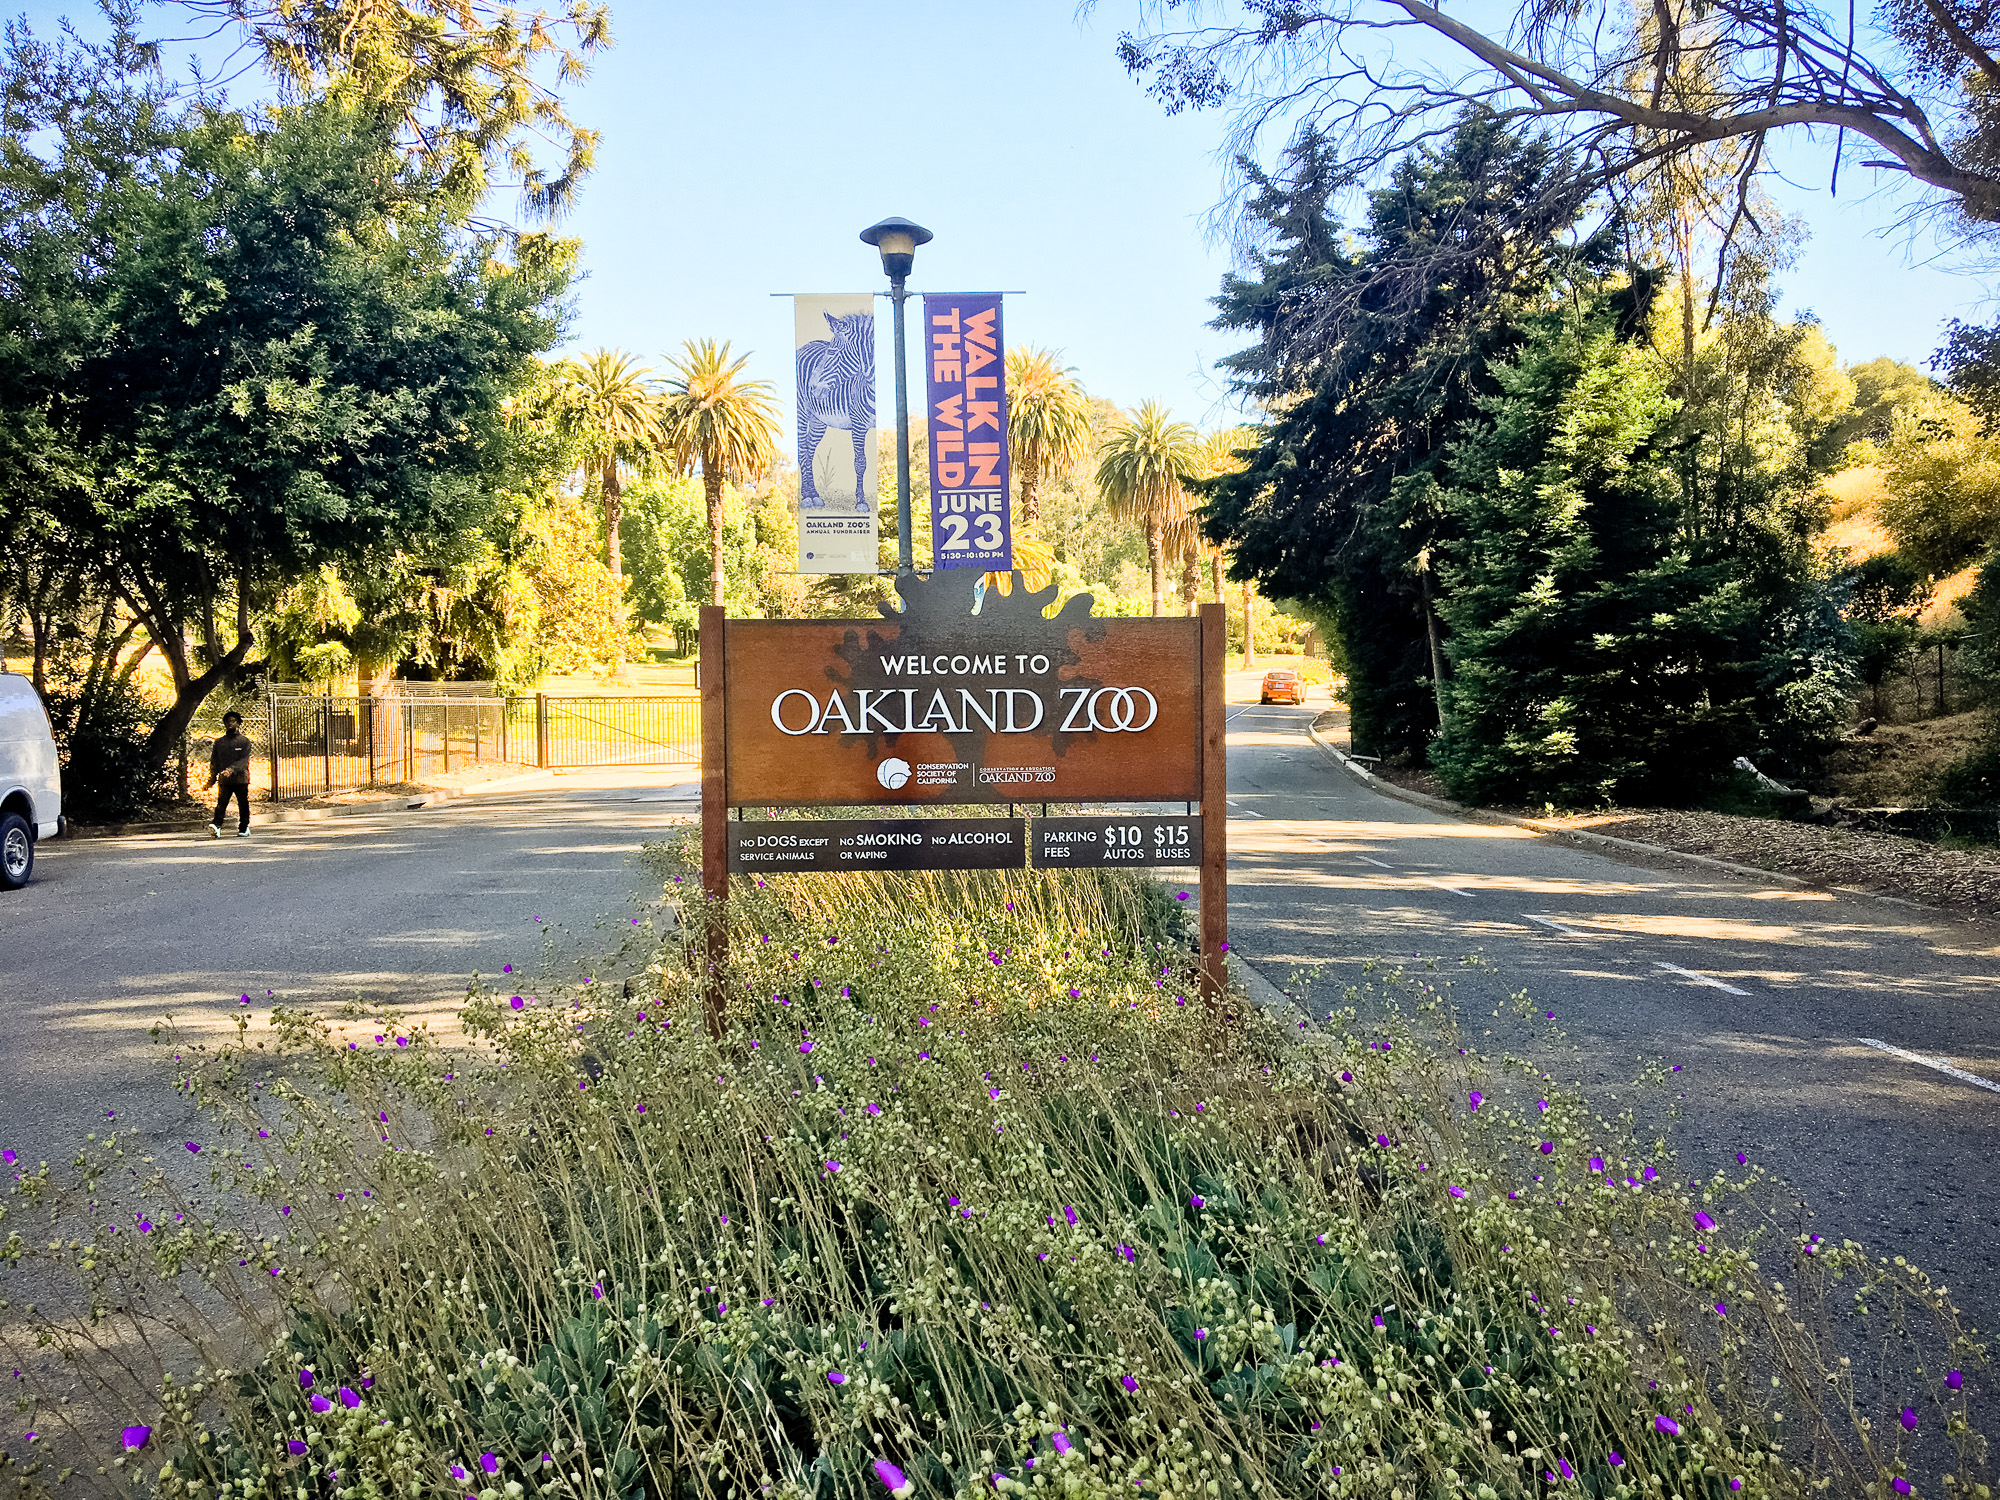 Oakland zoo outdoor national park style wood sign with anti graffiti coating